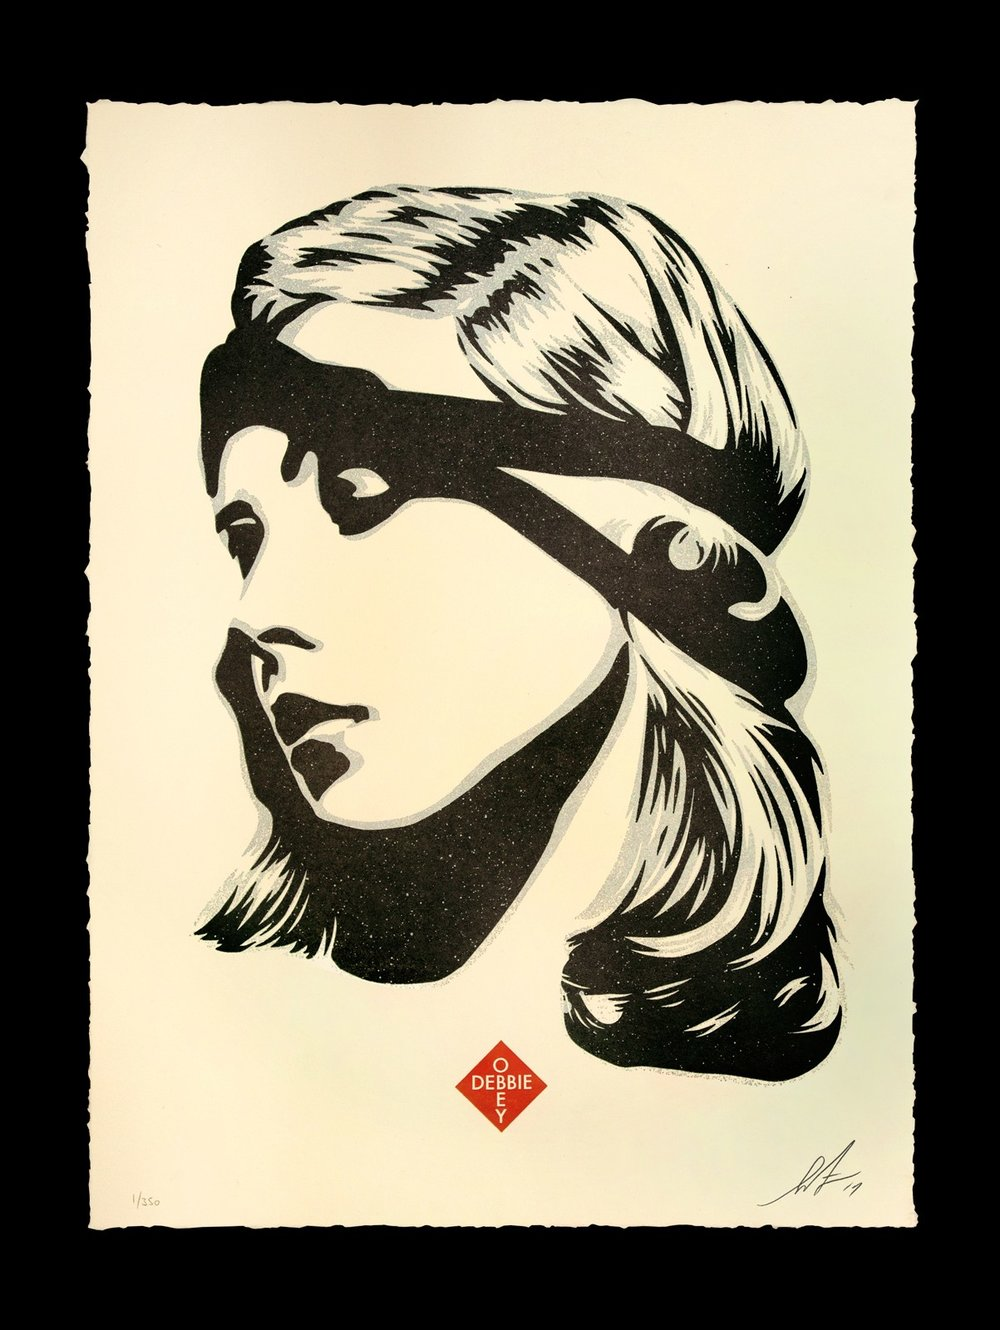 Debbie Harry, Destiny. 13 x 17 inches. Letterpress on 100% cotton archival paper with hand-deckled edges. Signed by Shepard Fairey. Numbered edition of 350. $75 per print. $150 per set. A limited number of this print will be available Saturday, August 12 at 12 PM (PDT) at the OBEY Zine Newsstand (7400 Melrose Ave) in Los Angeles. The rest available Tuesday, August 15 at 10 AM (PDT) on ObeyGiant.com in Store under Prints. Limit 1 per person/household.